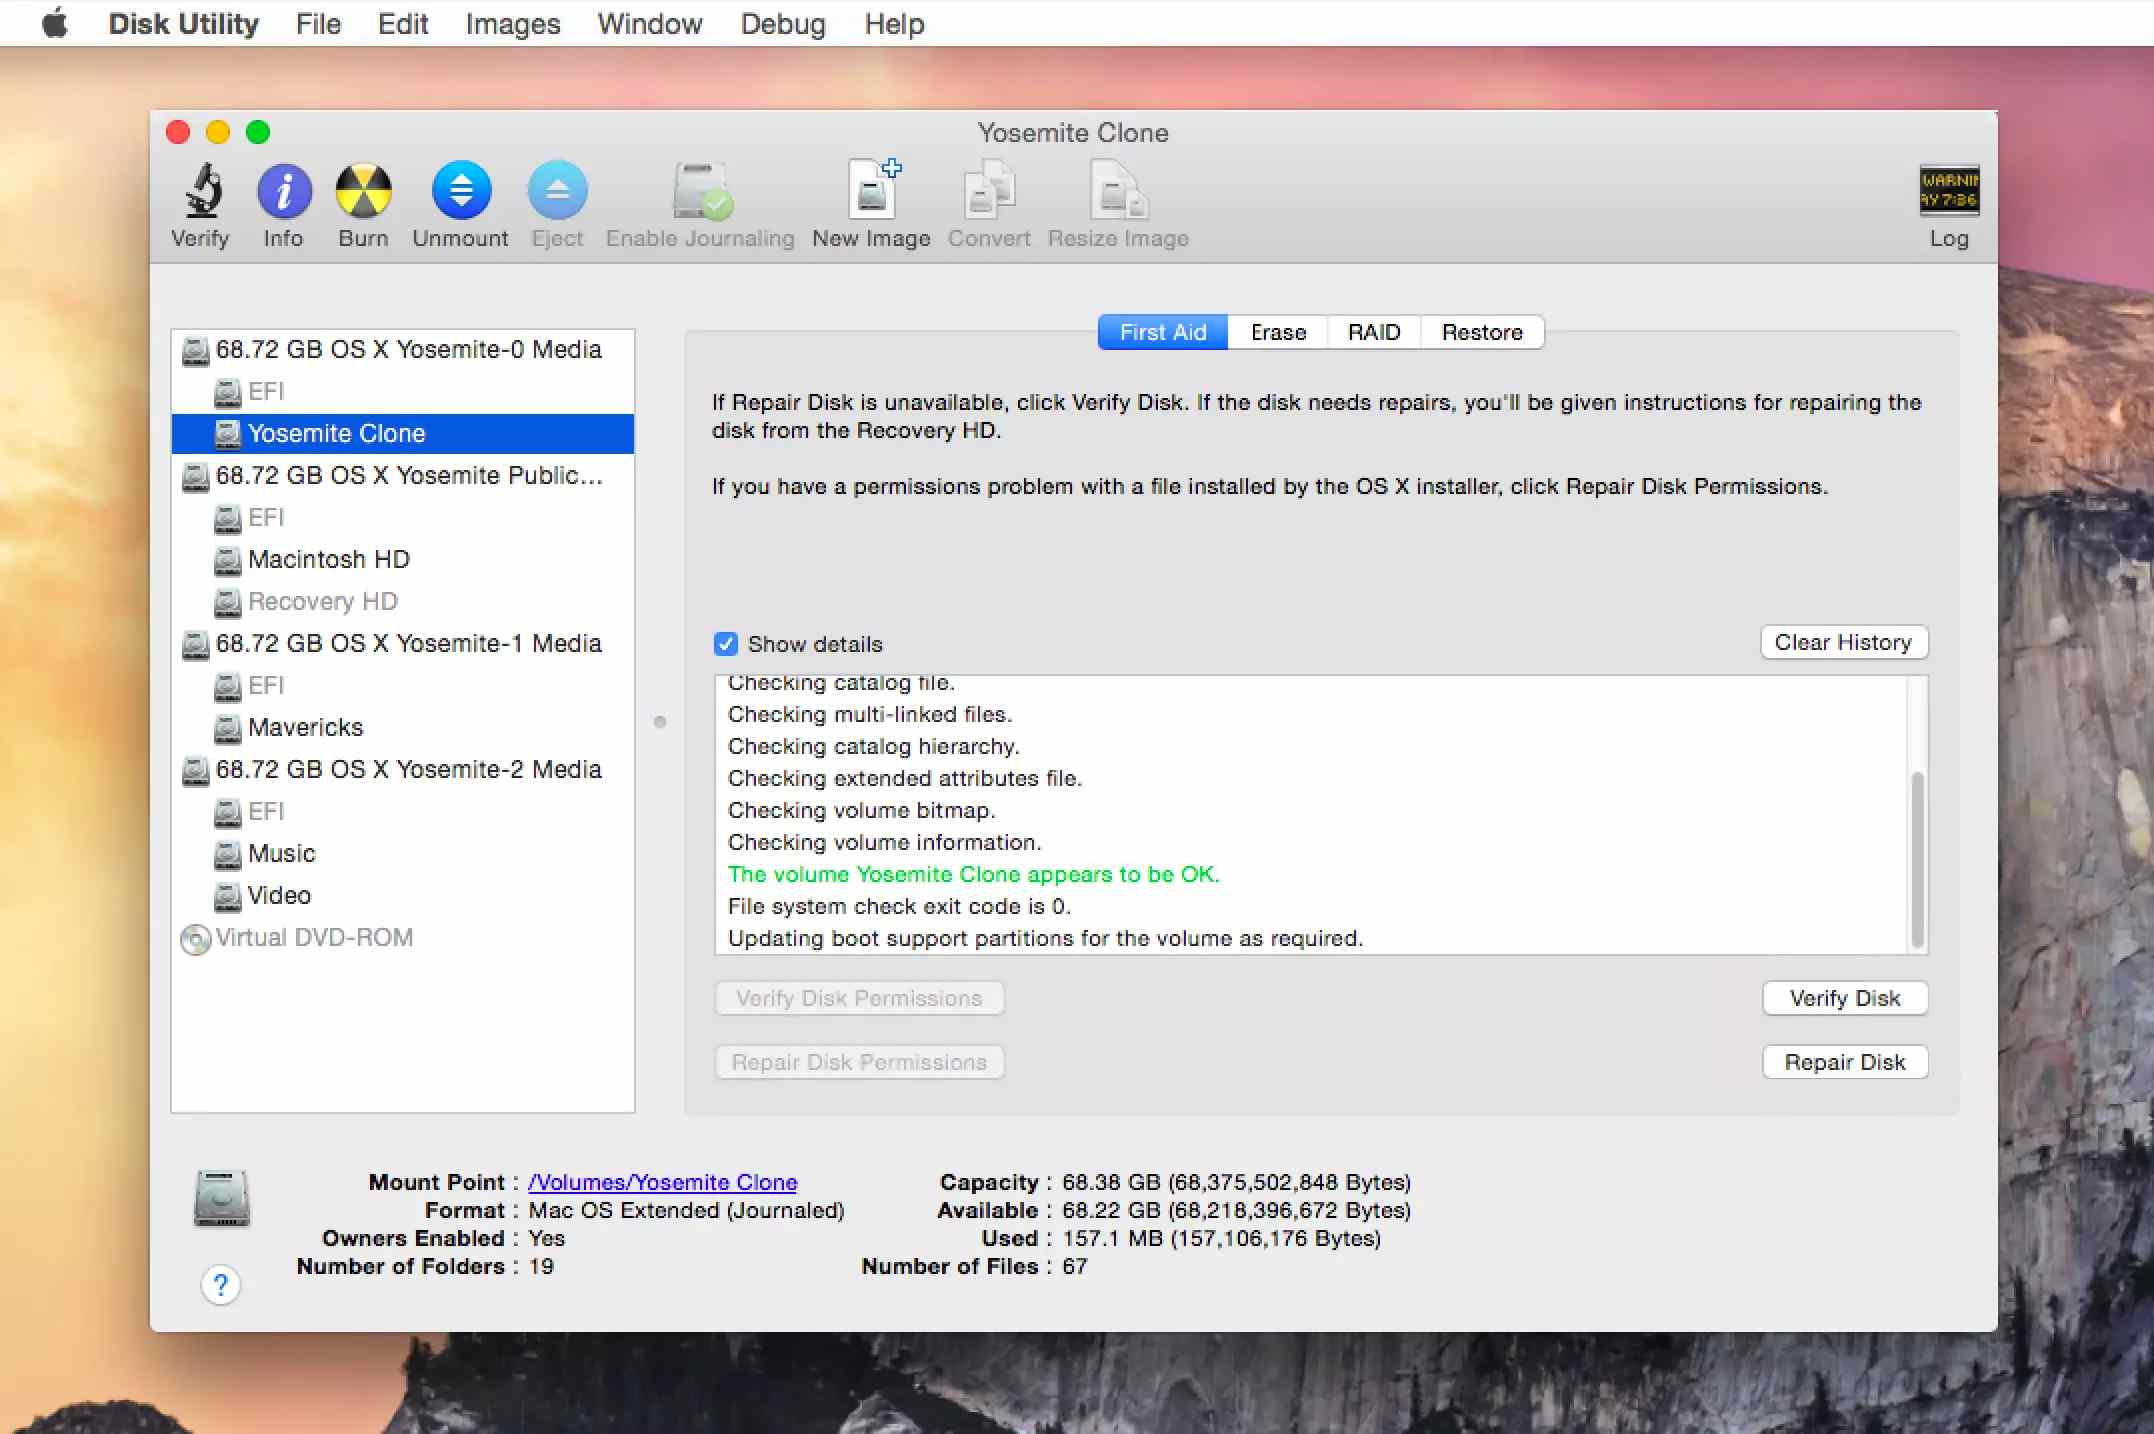 Disk Utility to Repair Disk Permissions